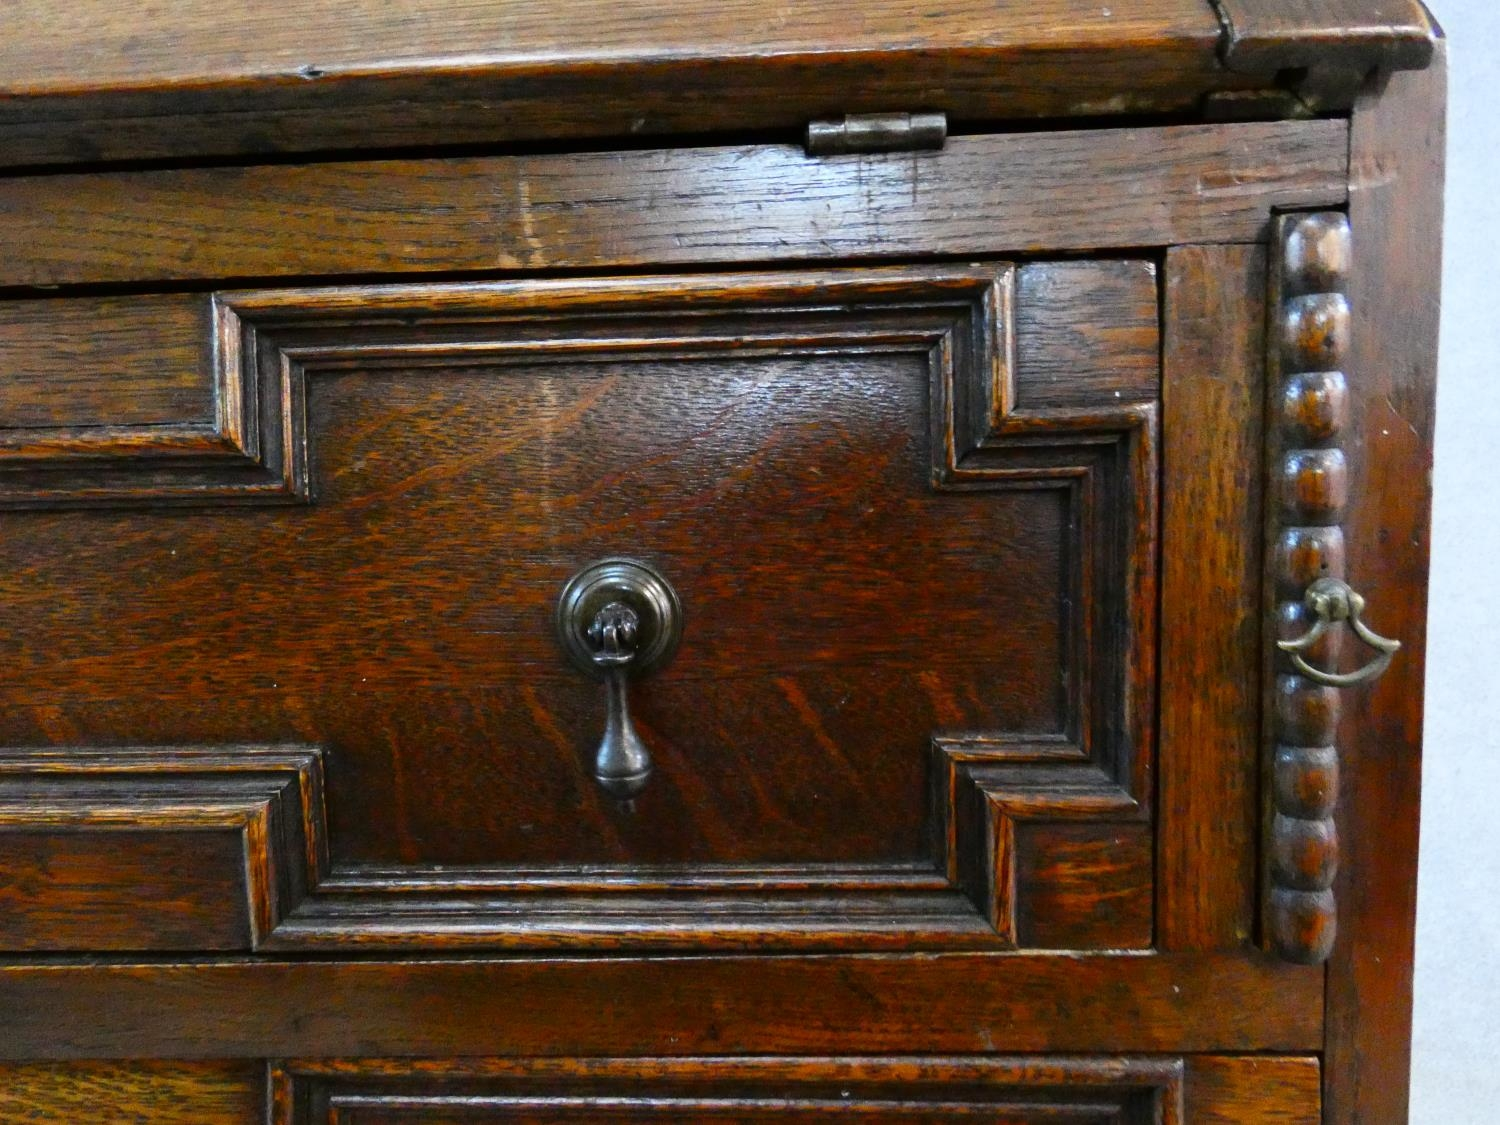 A mid century Jacobean style oak bureau with lozenge inset panels and fall front revealing fitted - Image 7 of 26